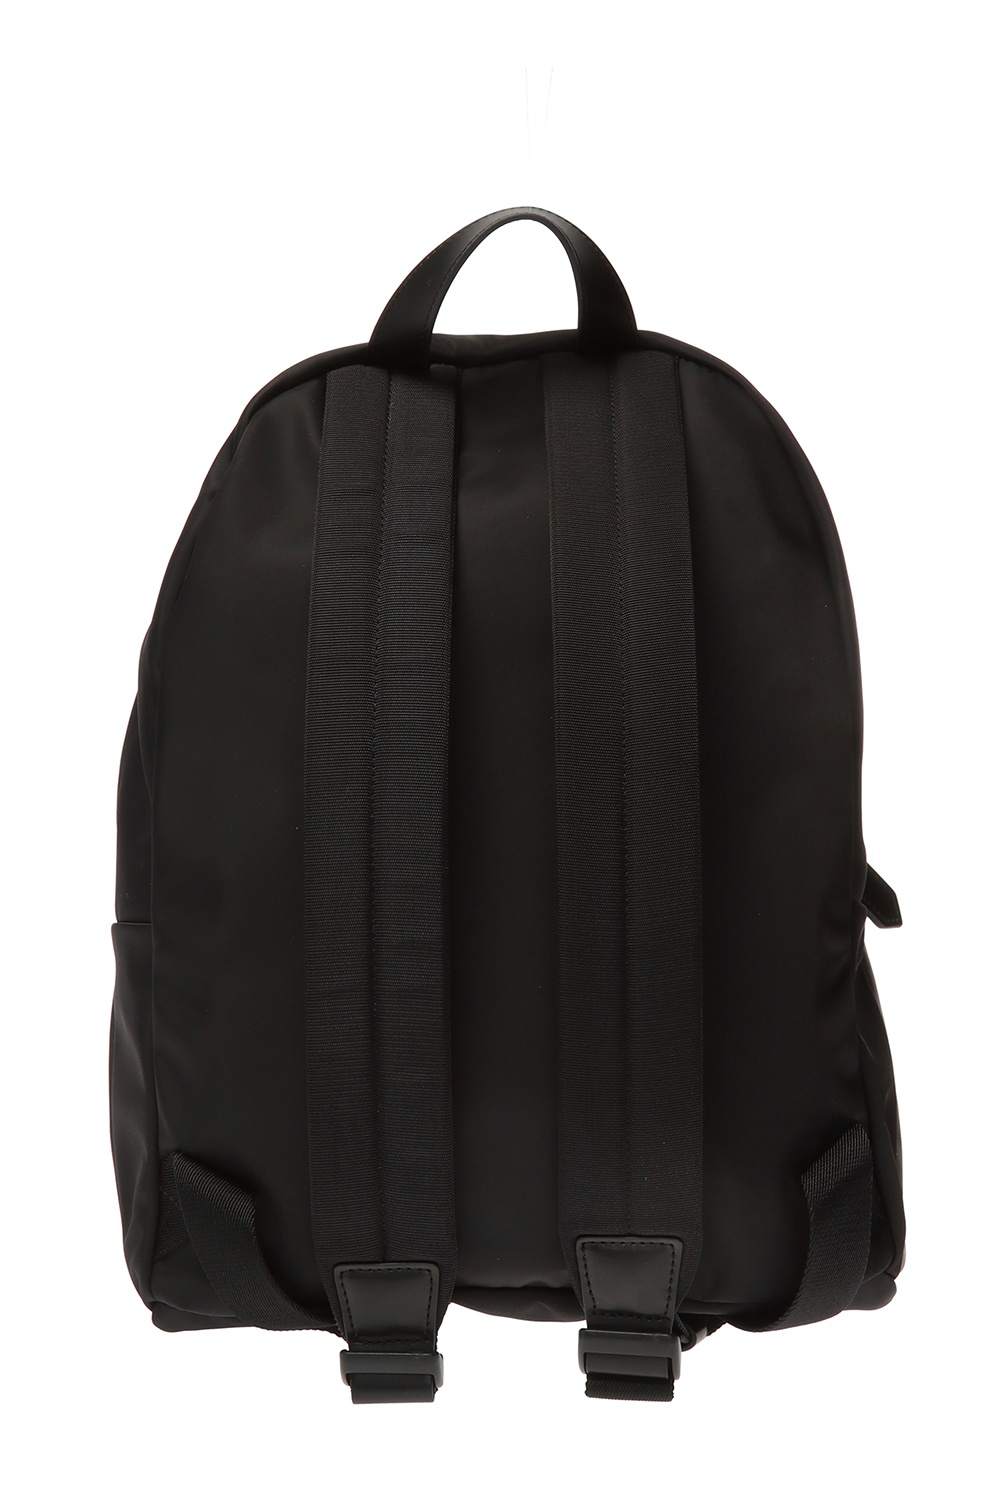 Dsquared2 'Exclusive for Vitkac' limited collection backpack